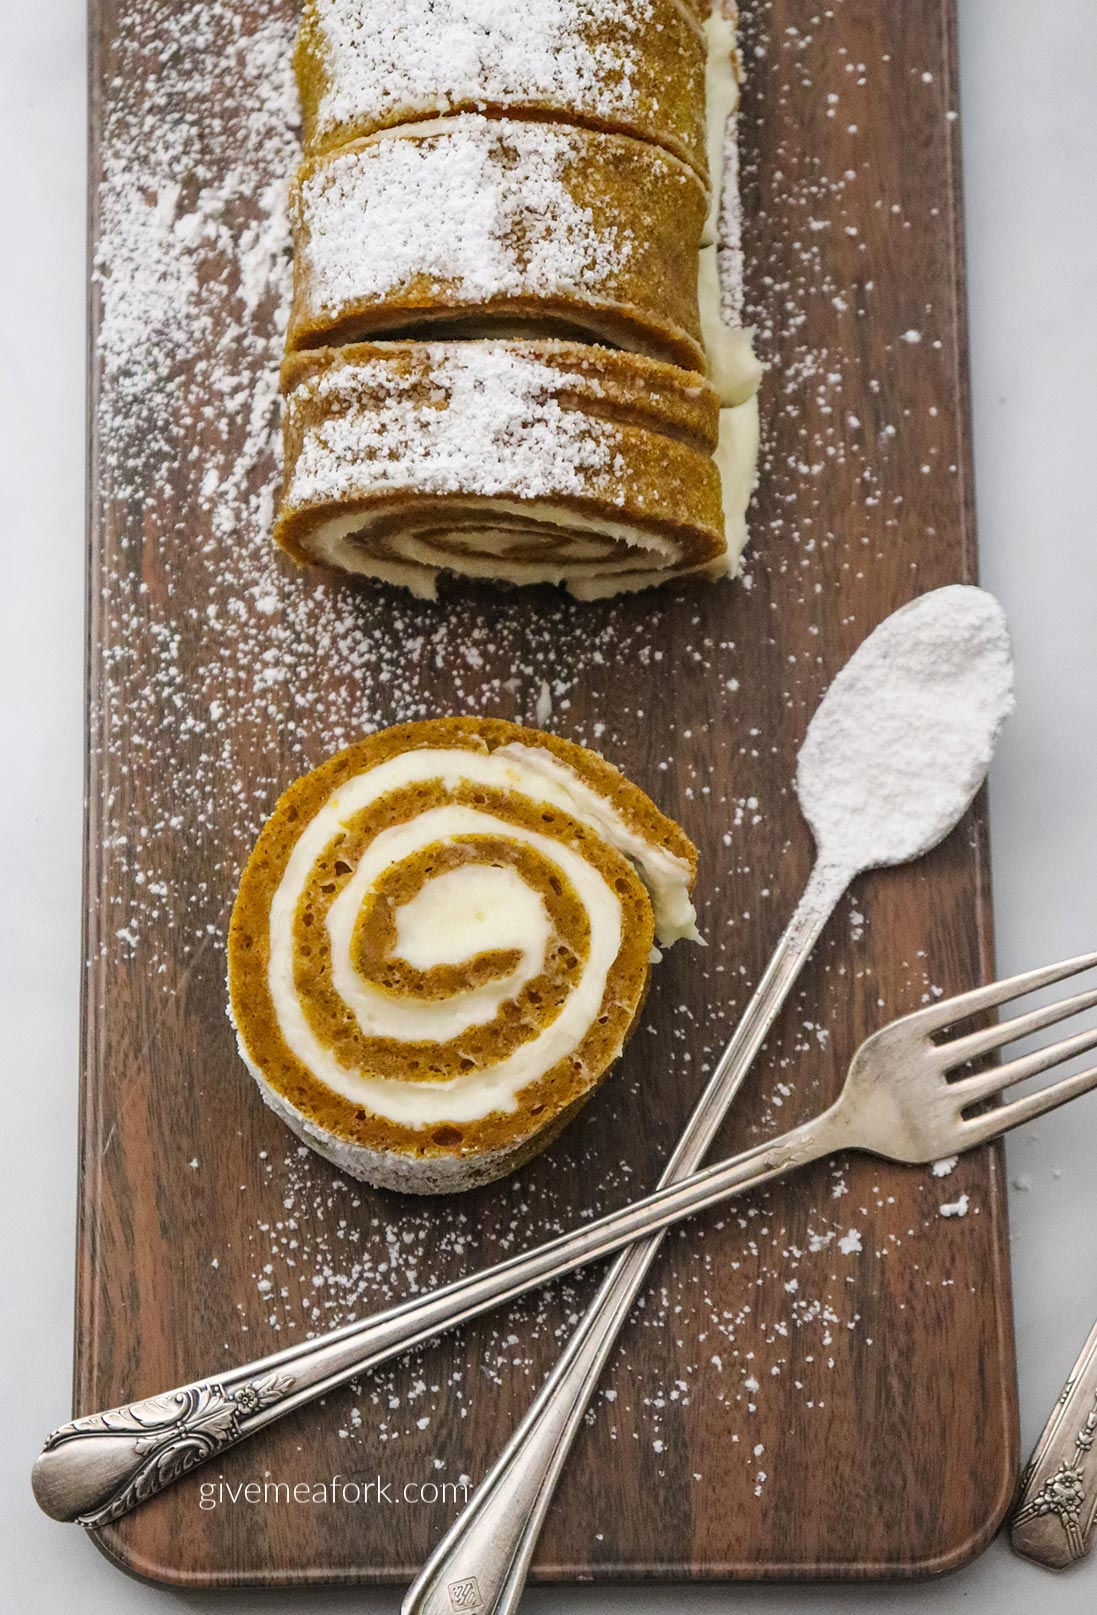 pumpkin roll on a wooden board with a fork and spoon